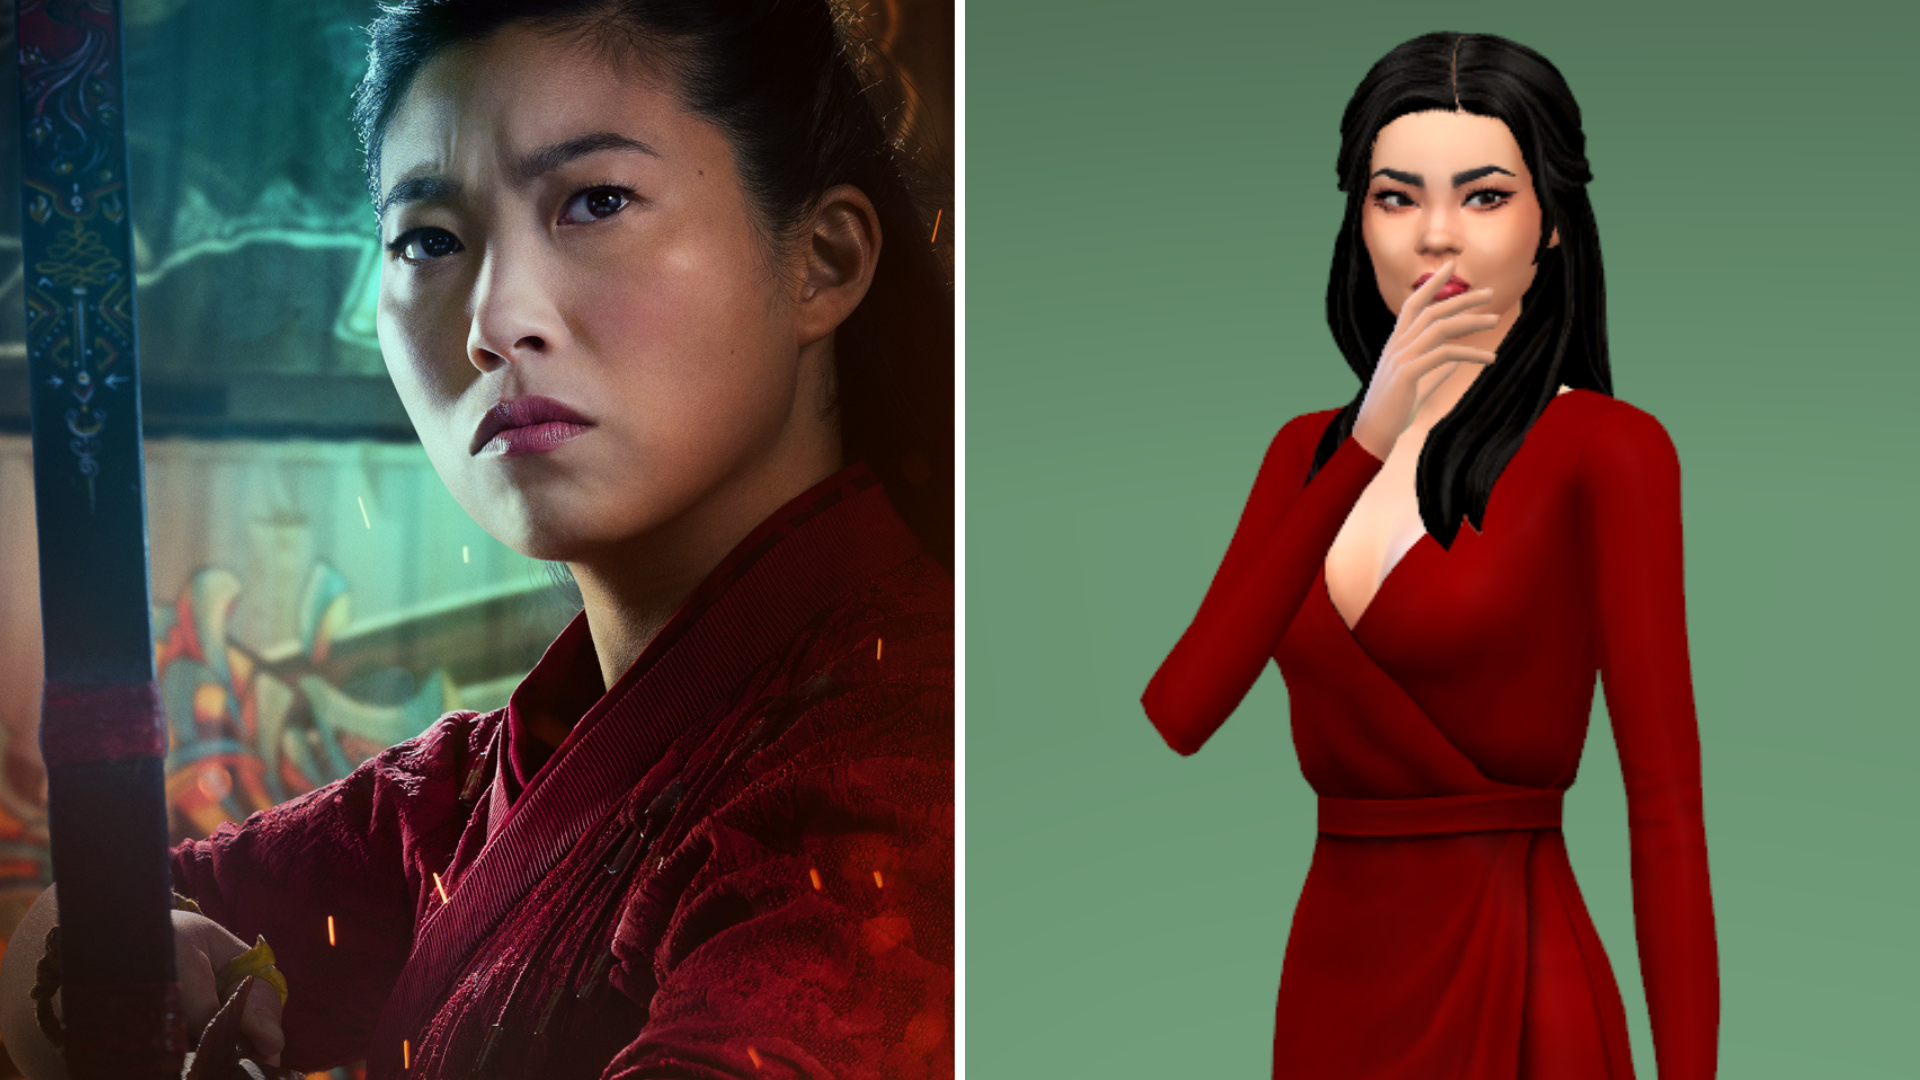 Shang-Chi's best friend Katy and her Sim